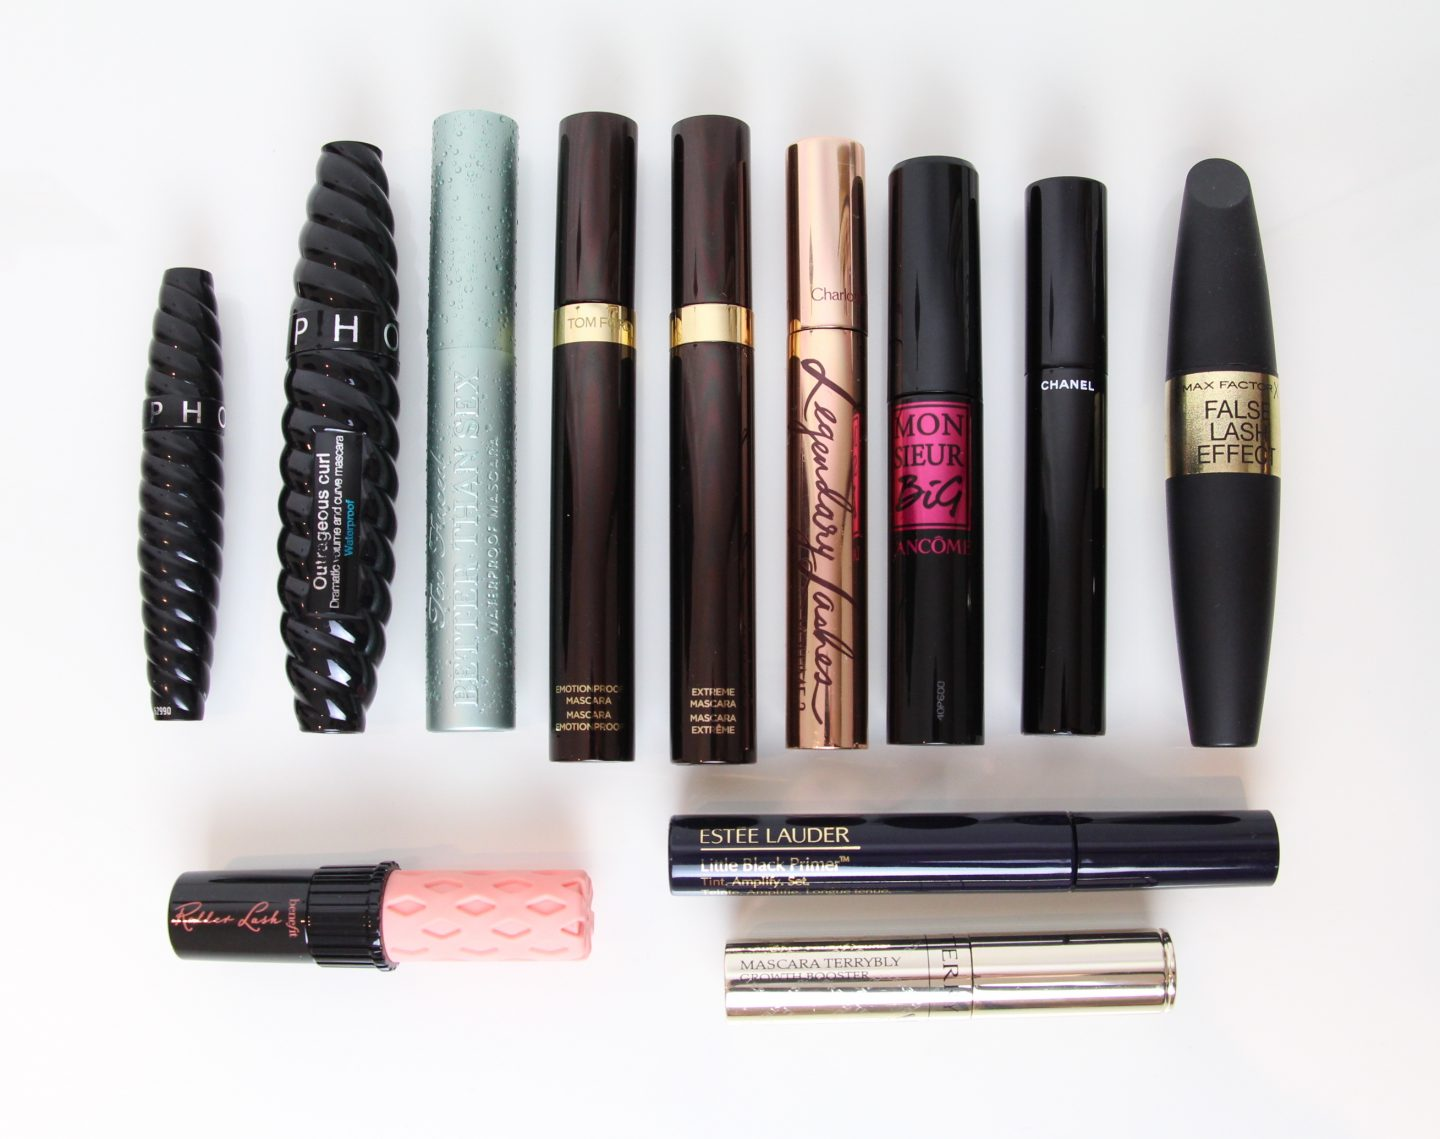 Mascara Round-up: Mini Reviews on Recent Empties